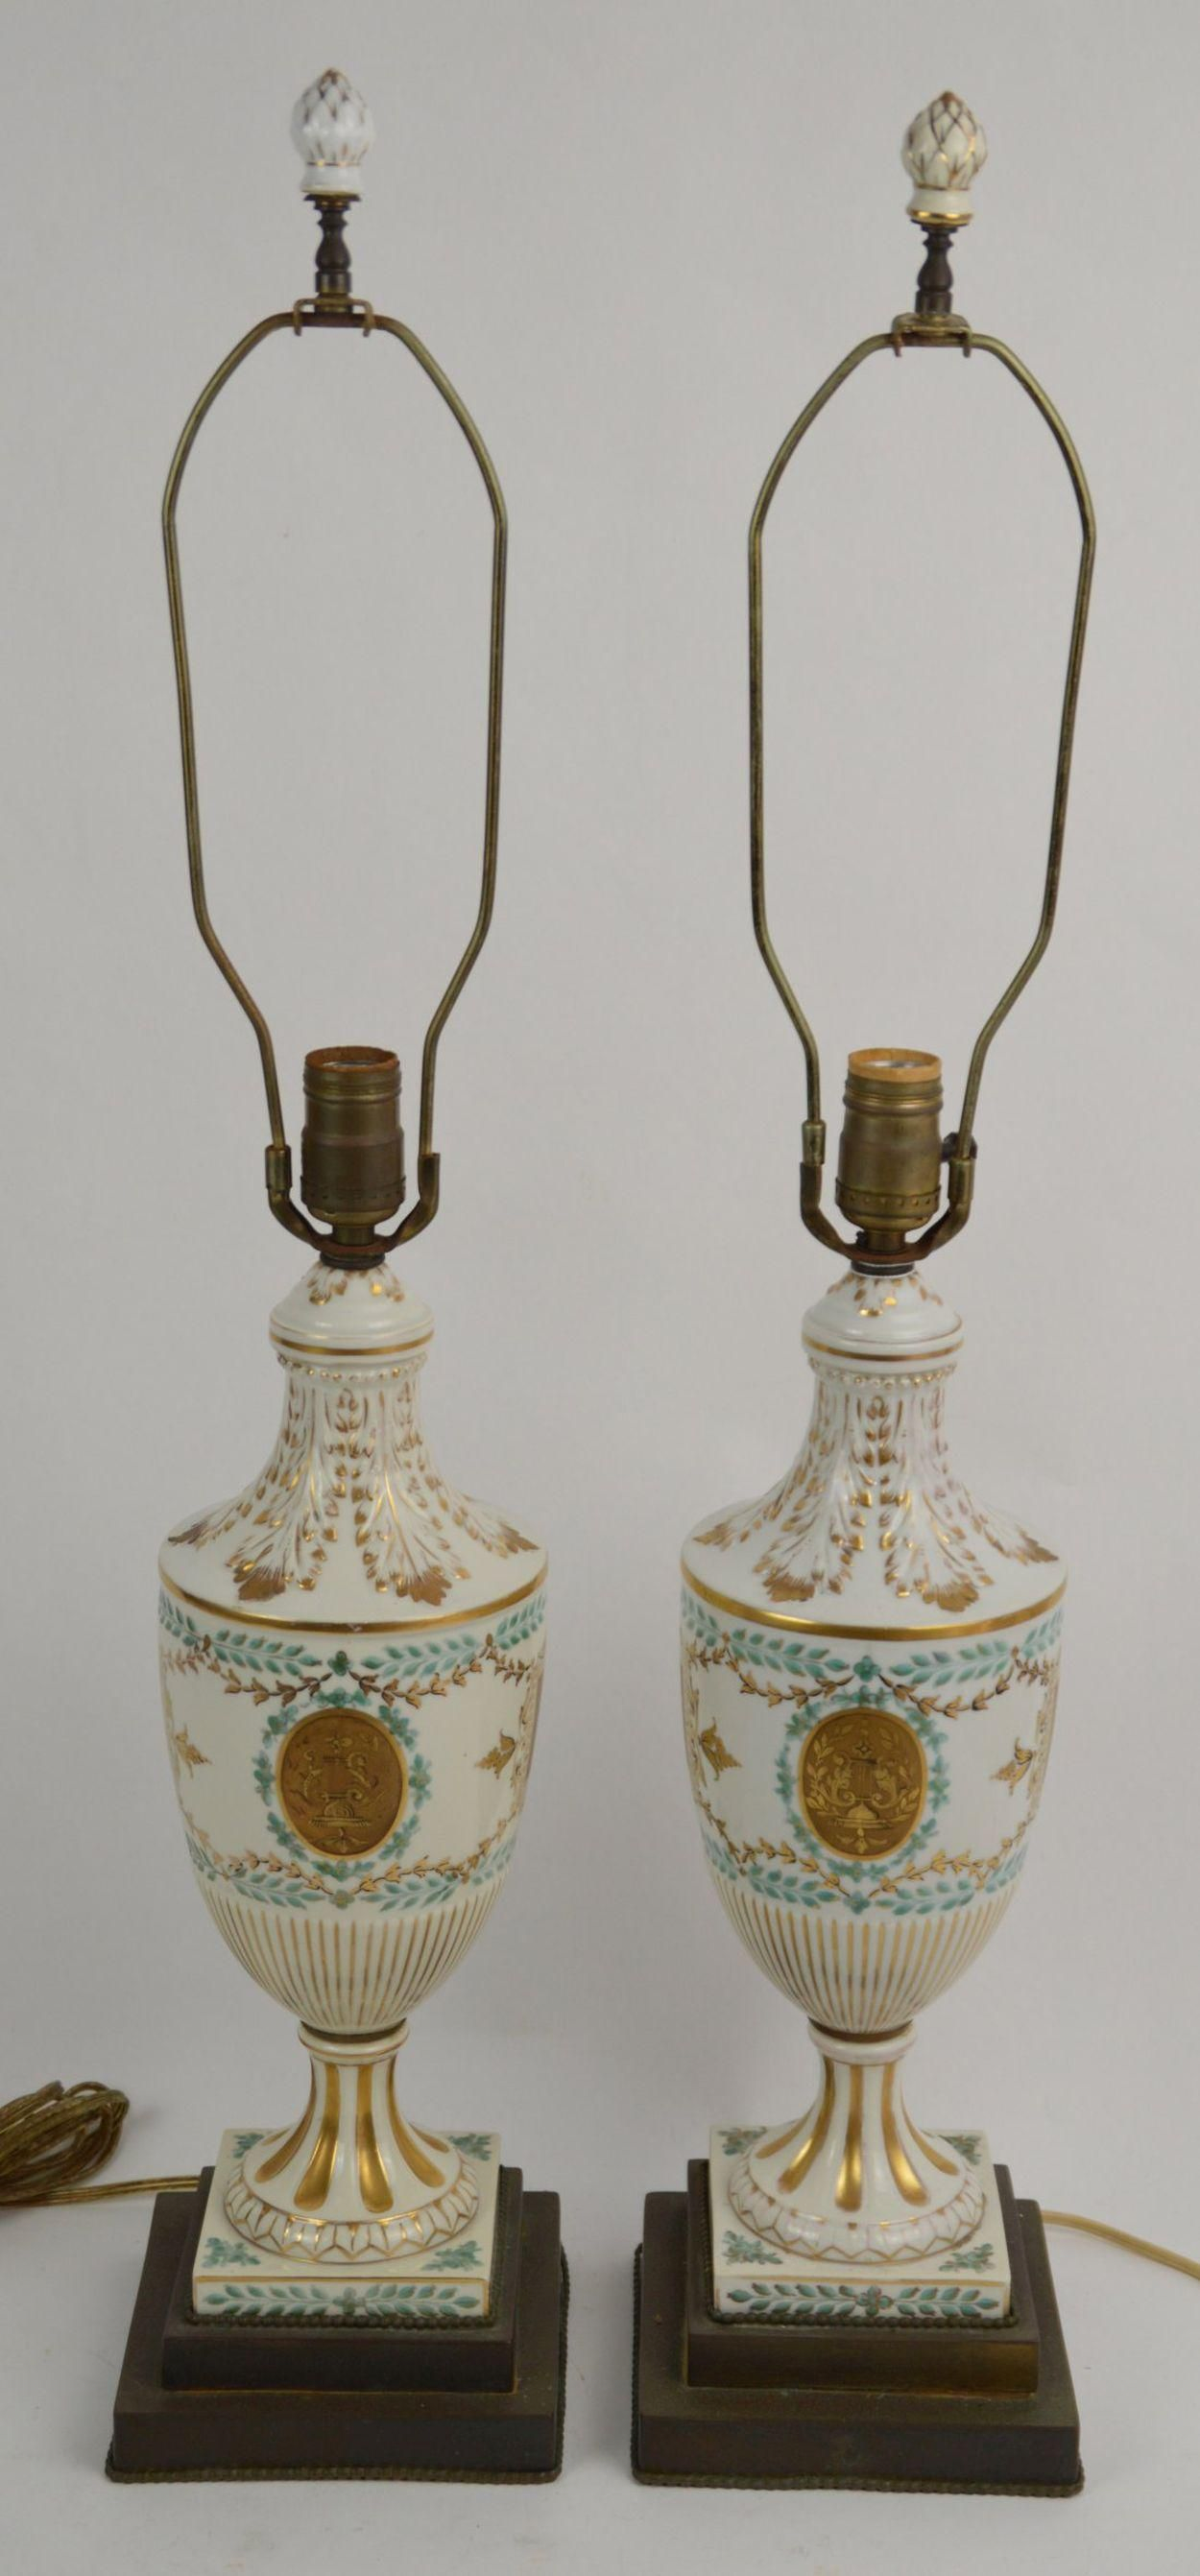 Pair French Porcelain Urn Shaped Lamps, White Ground